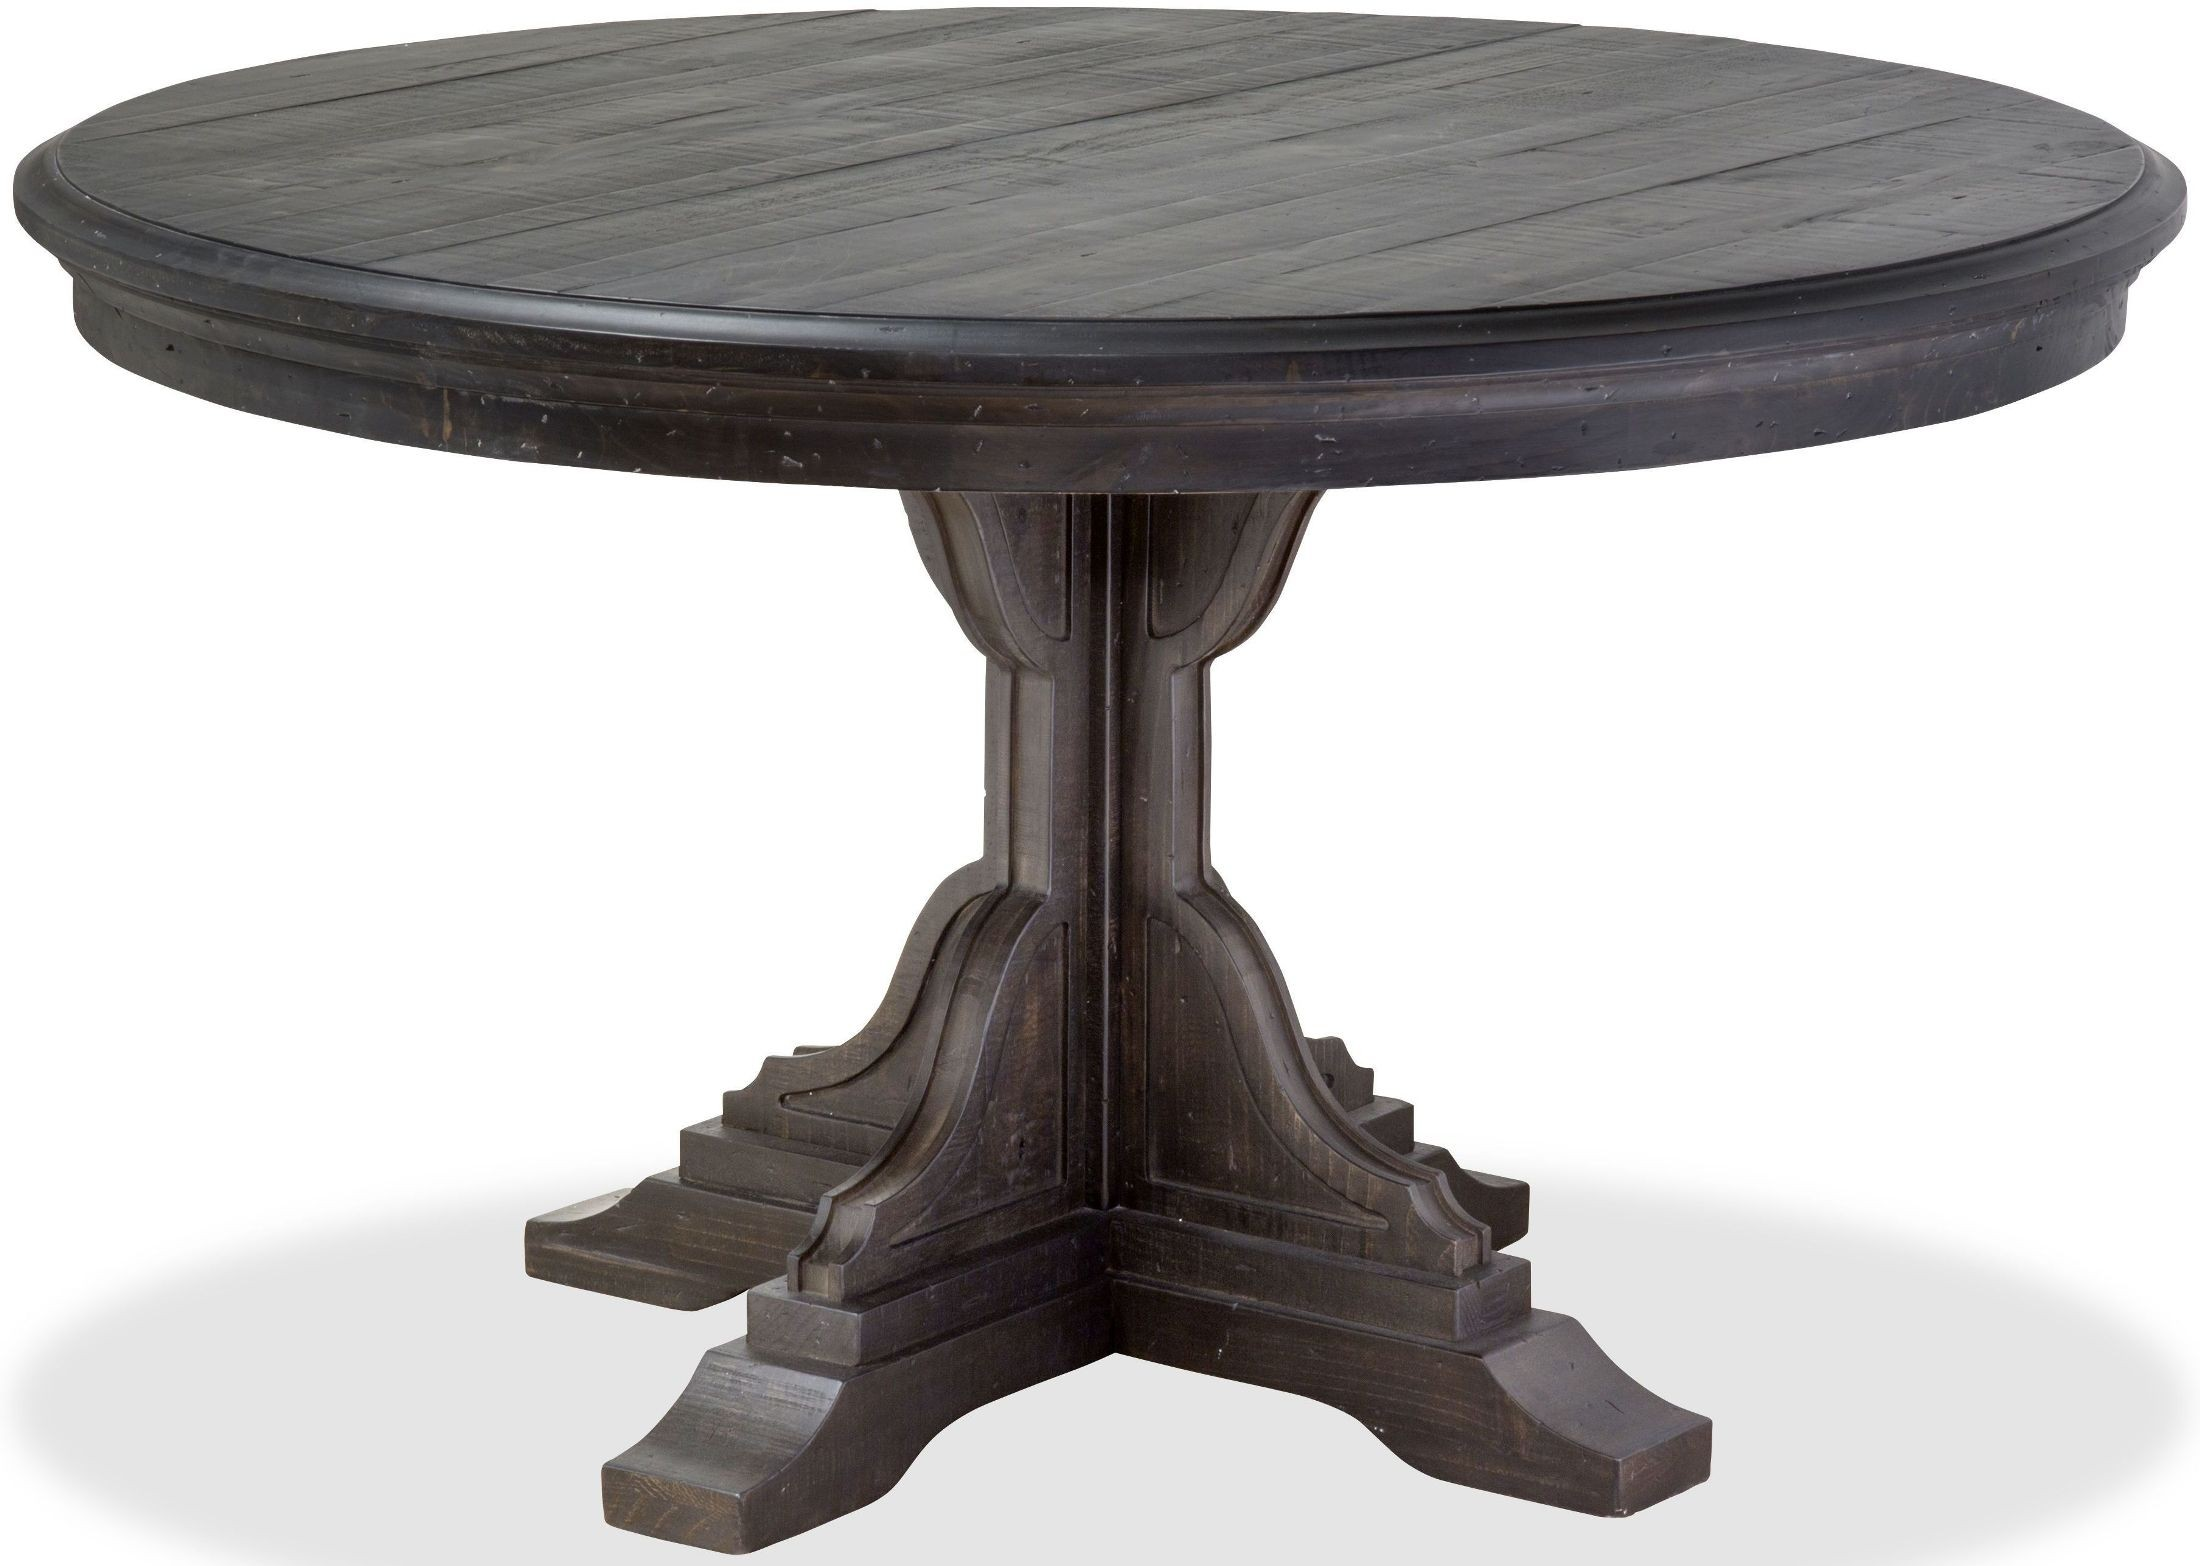 Bedford Corners Anvil Black Round Dining Table from Magnussen Home